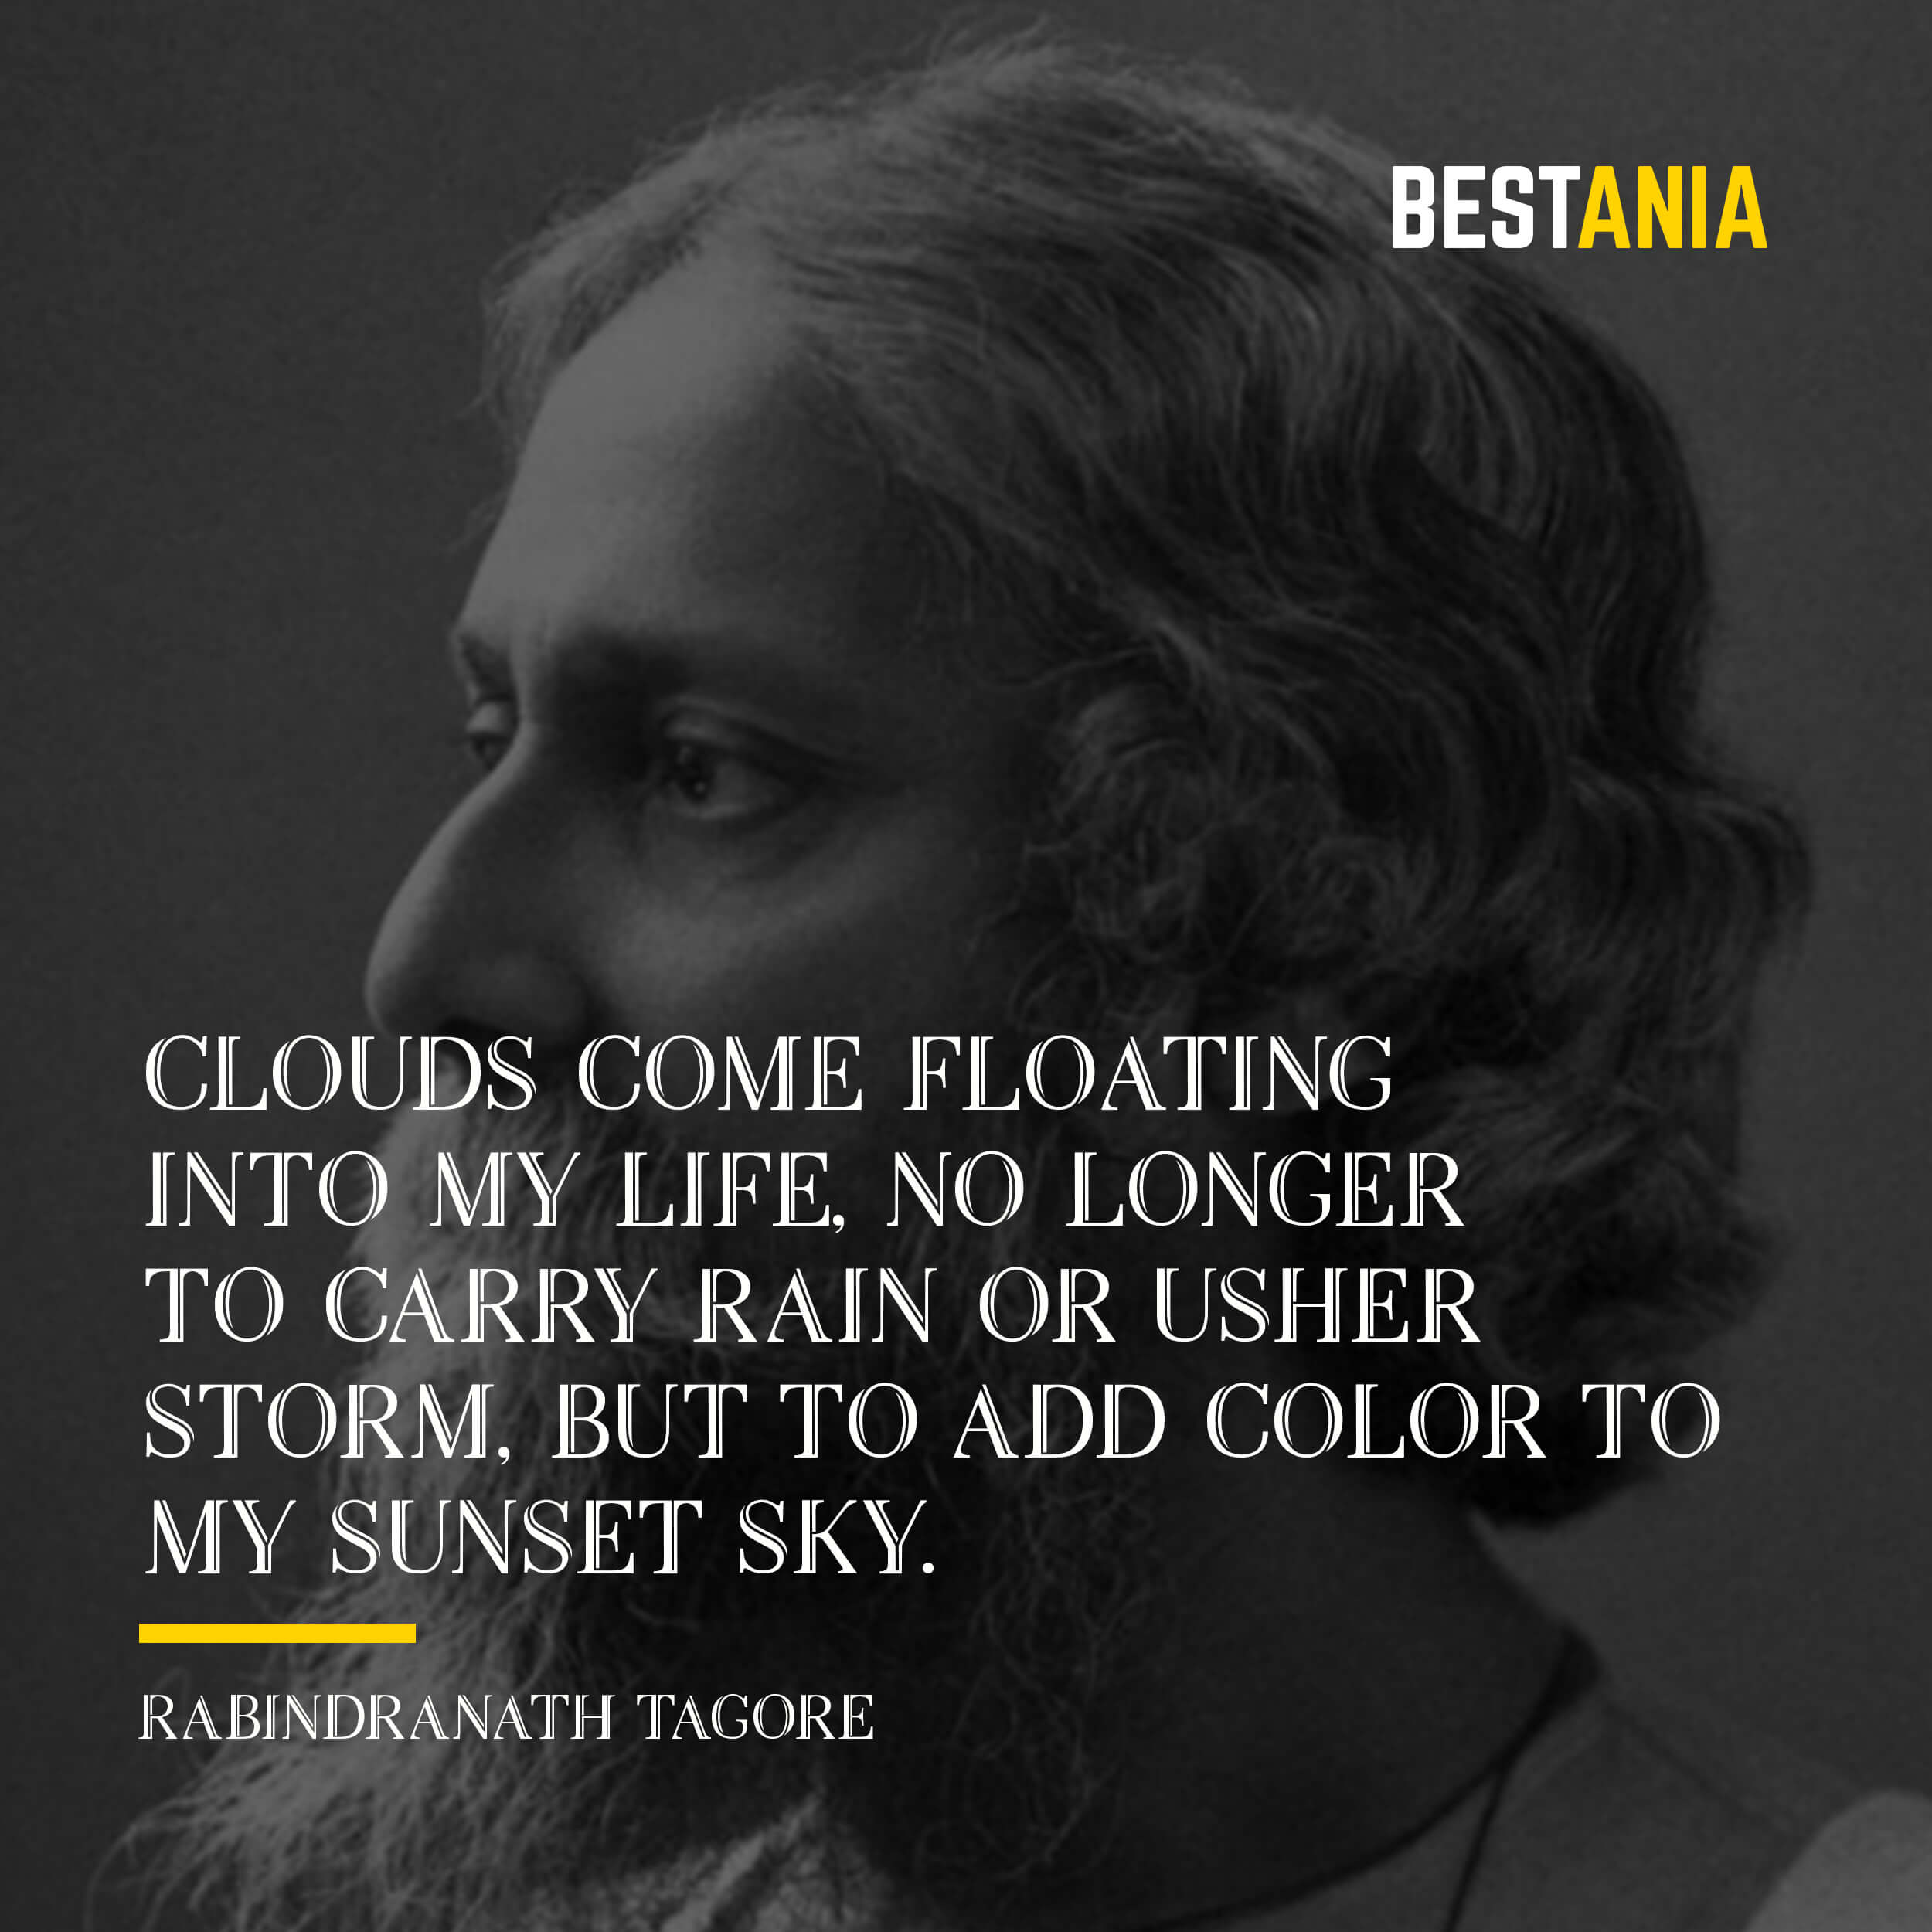 """""""CLOUDS COME FLOATING INTO MY LIFE, NO LONGER TO CARRY RAIN OR USHER STORM, BUT TO ADD COLOR TO MY SUNSET SKY.""""  RABINDRANATH TAGORE"""